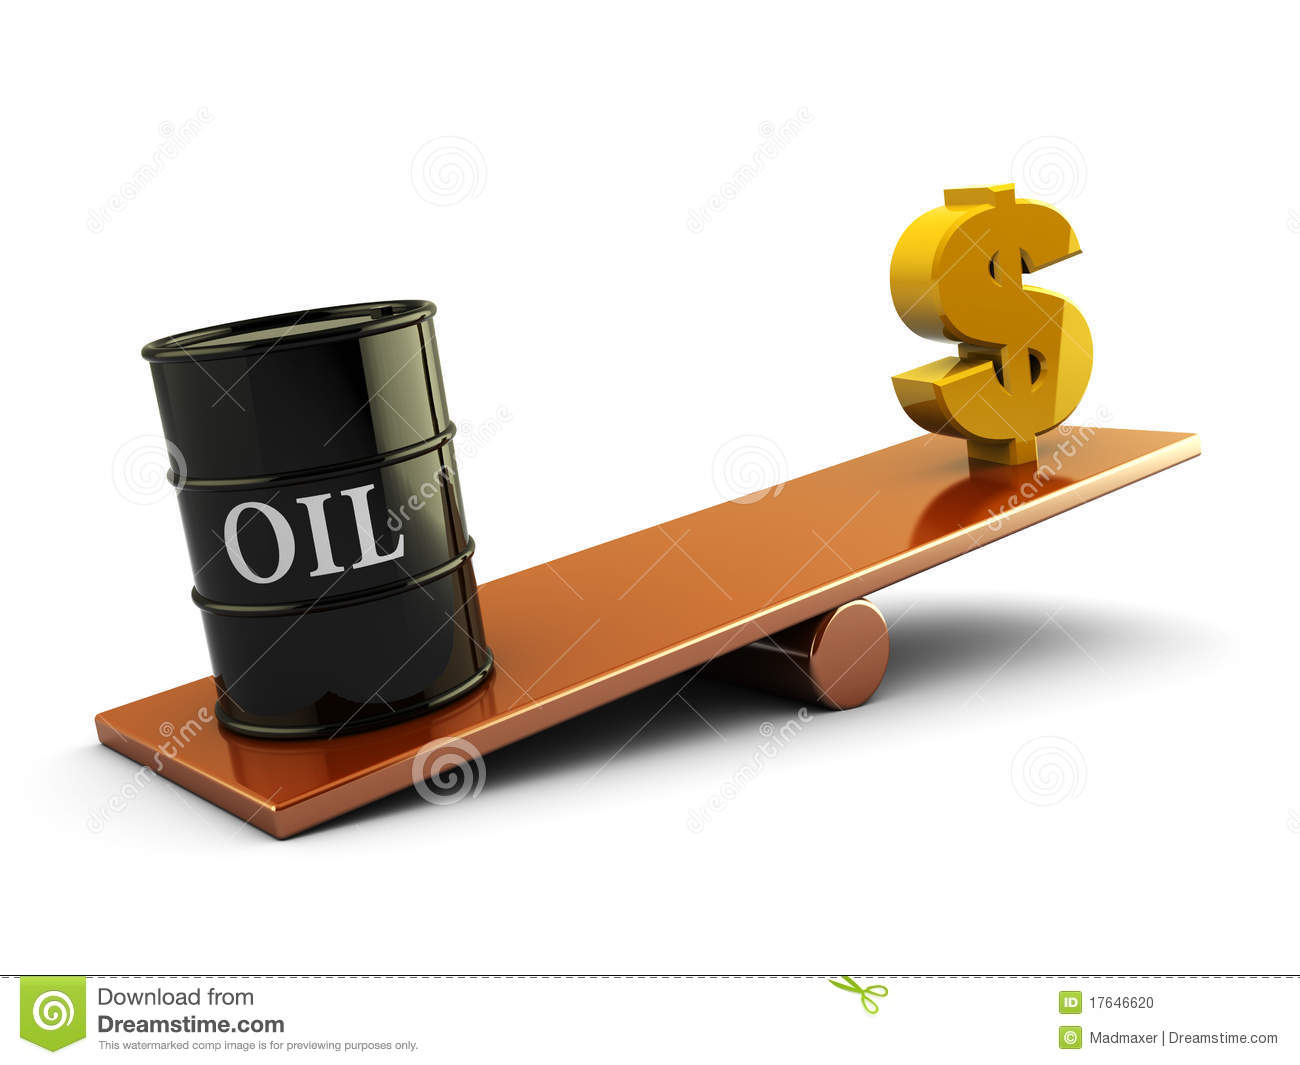 3d illustration of oil barrel and money sign on scale board.